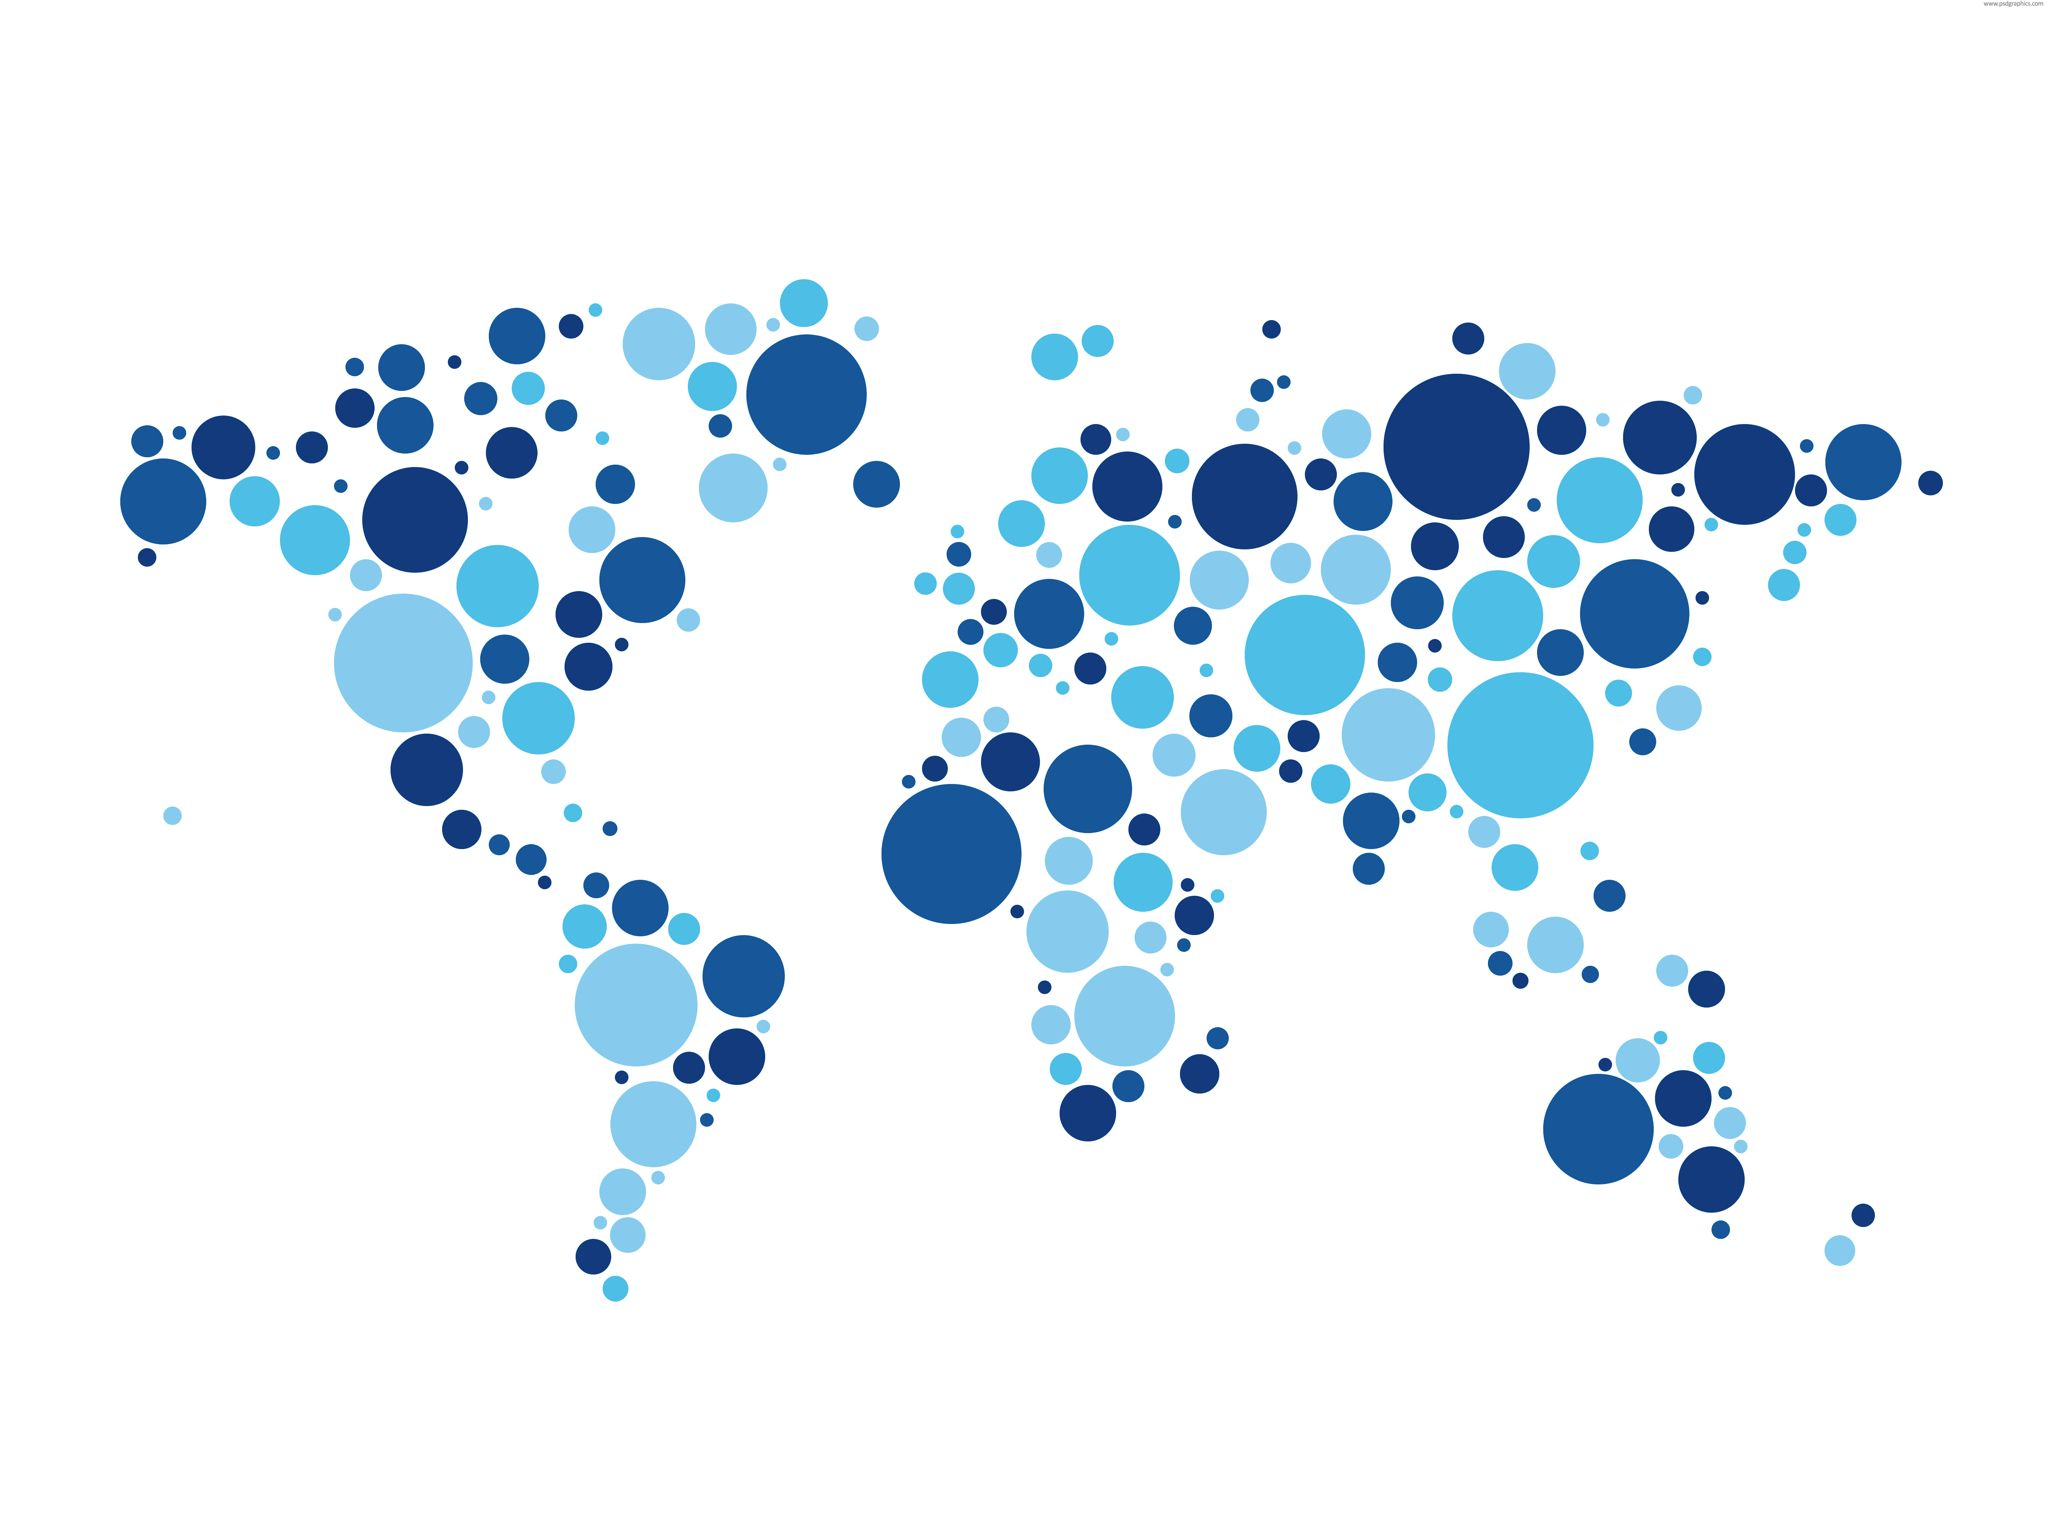 A world map made by blue dots world maps pinterest a world map made by blue dots gumiabroncs Image collections